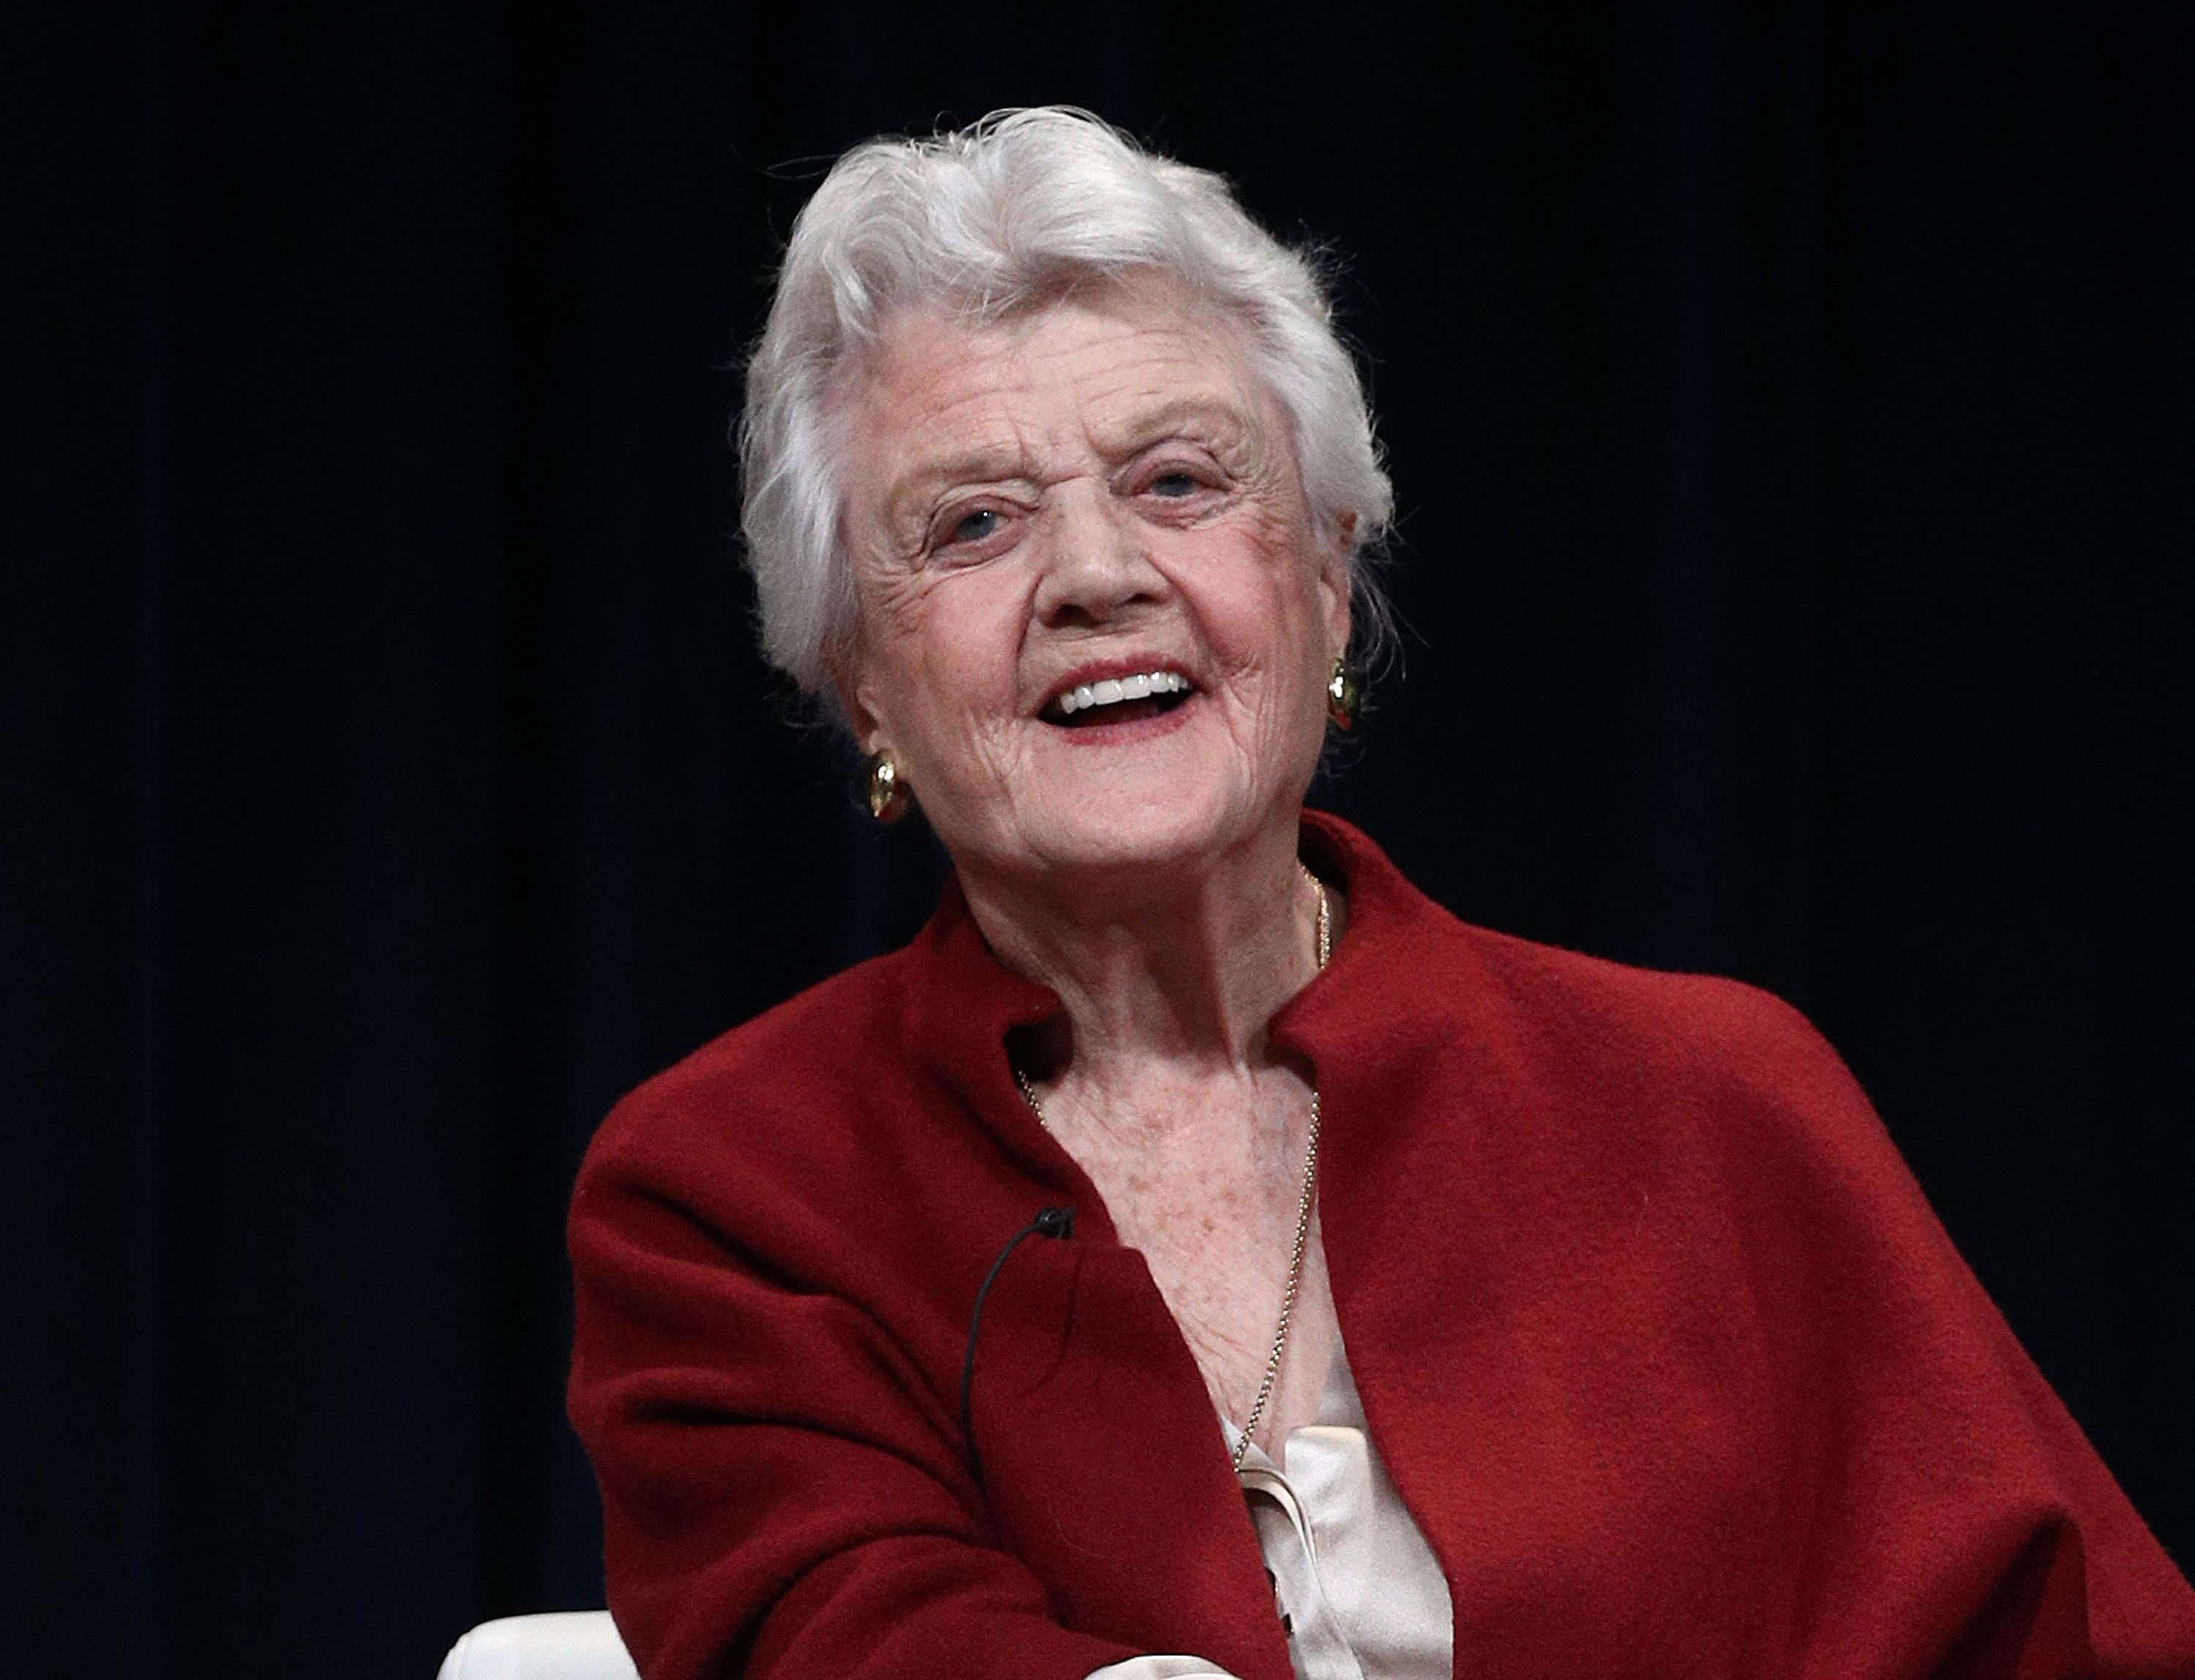 A portrait of Angela Lansbury taken at The Langham Huntington in Pasadena in January 2018. | Photo: Getty Images